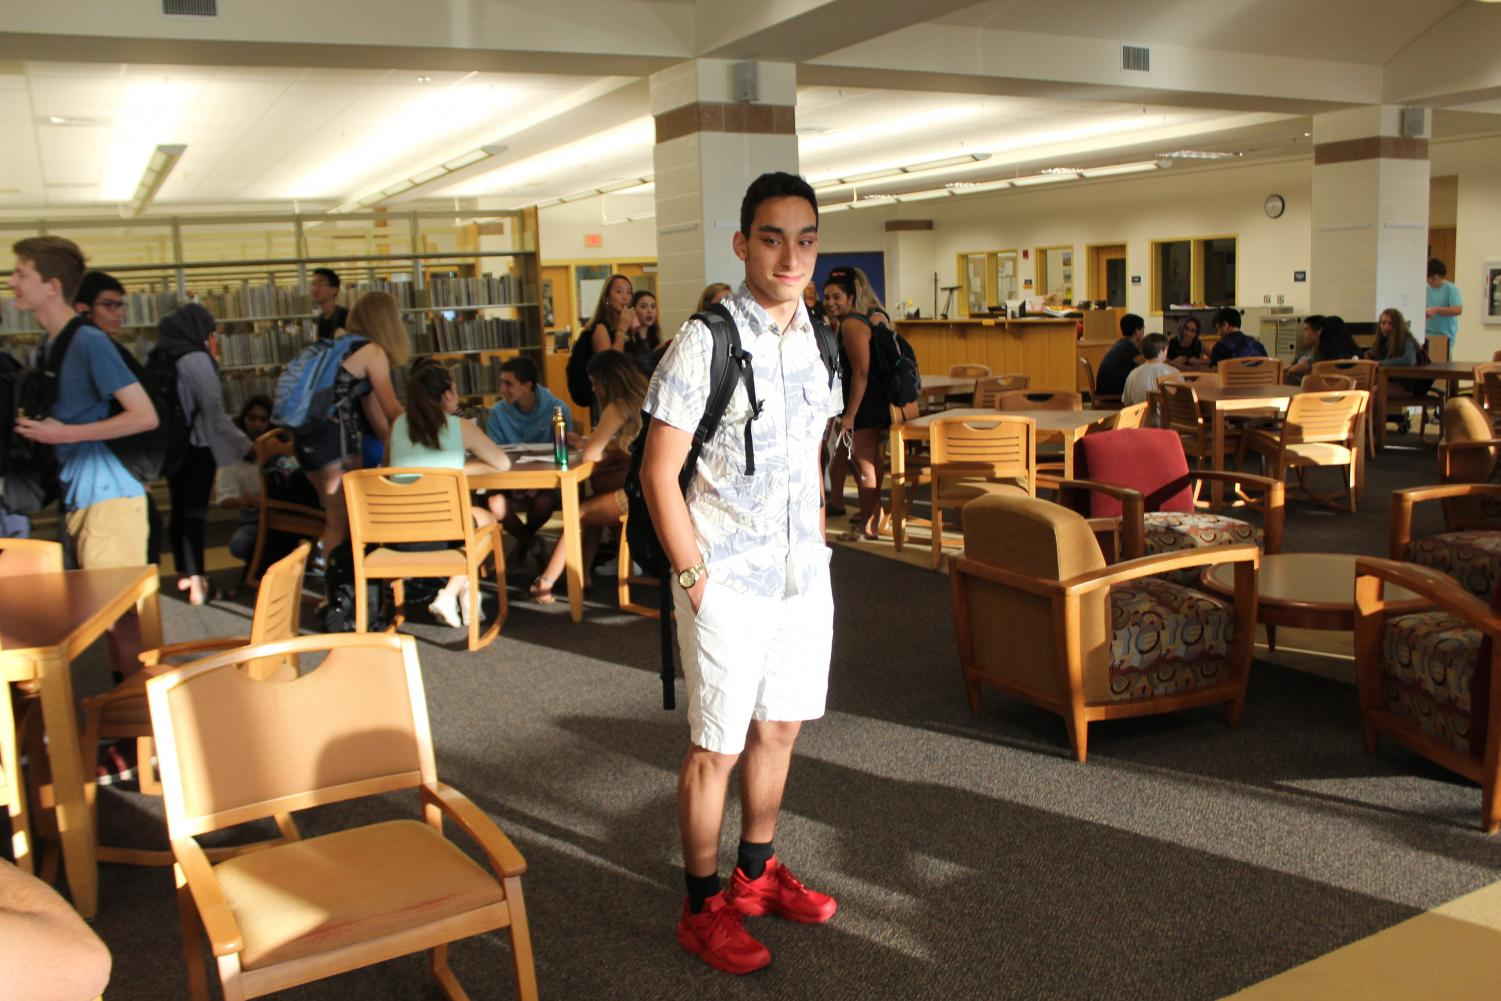 Senior+Aaron+Nodoushani+picks+a+tropical+look+for+the+first+day%2C+sporting+a+floral+button+down+and+white+shorts.